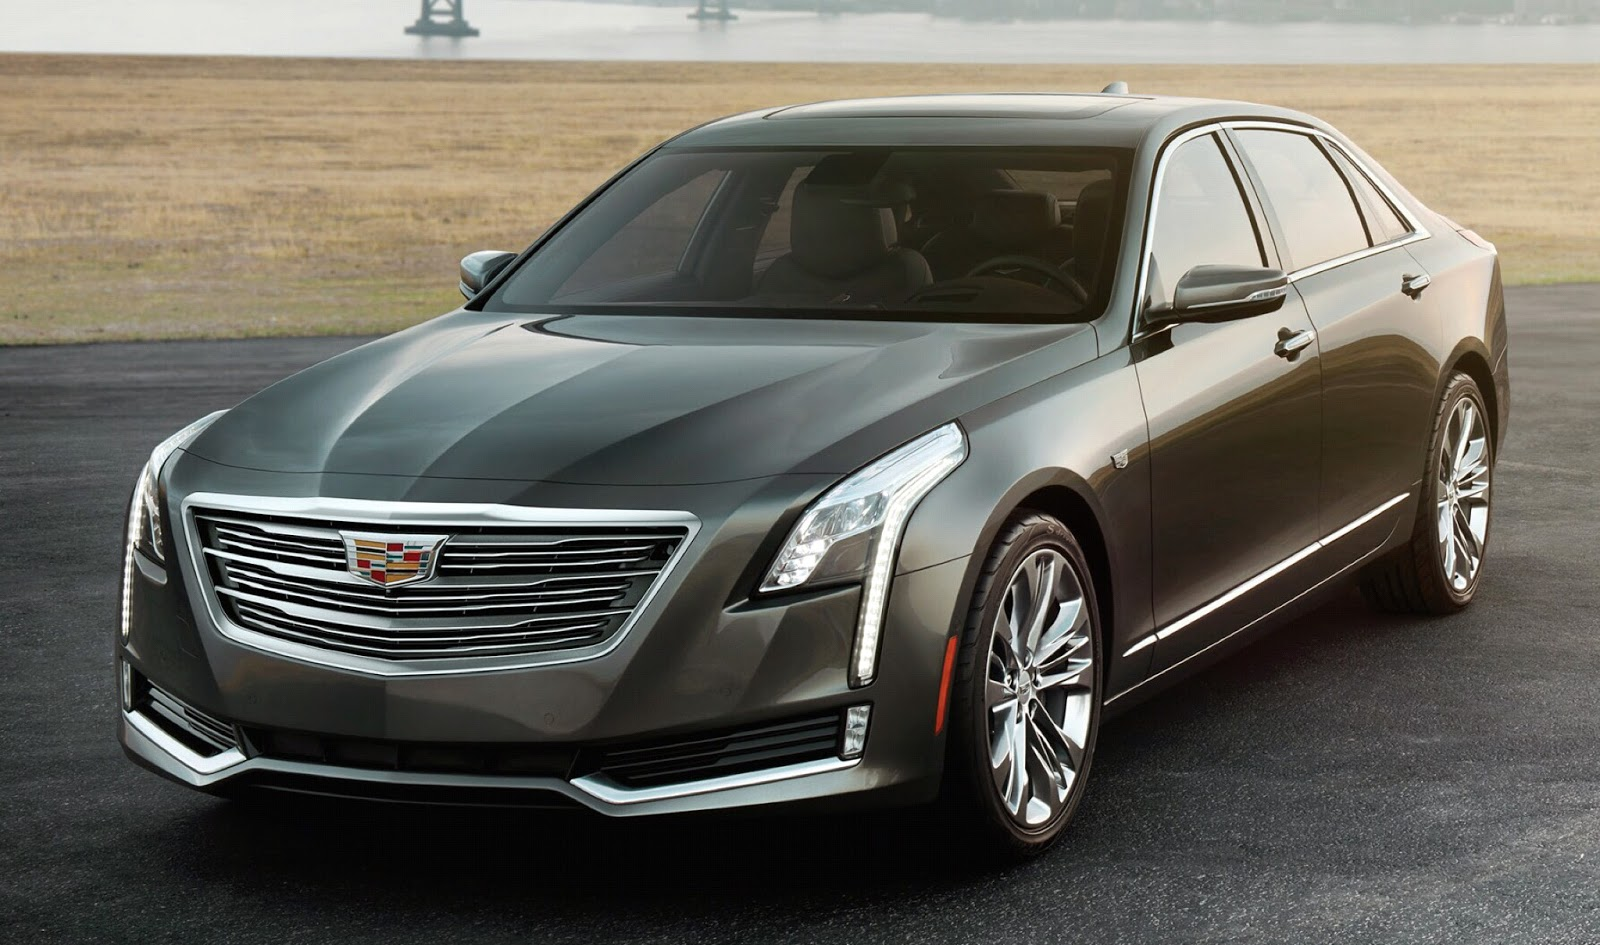 2016 Cadillac CT6 Leaked Ahead of NYIAS Debut - autoevolution